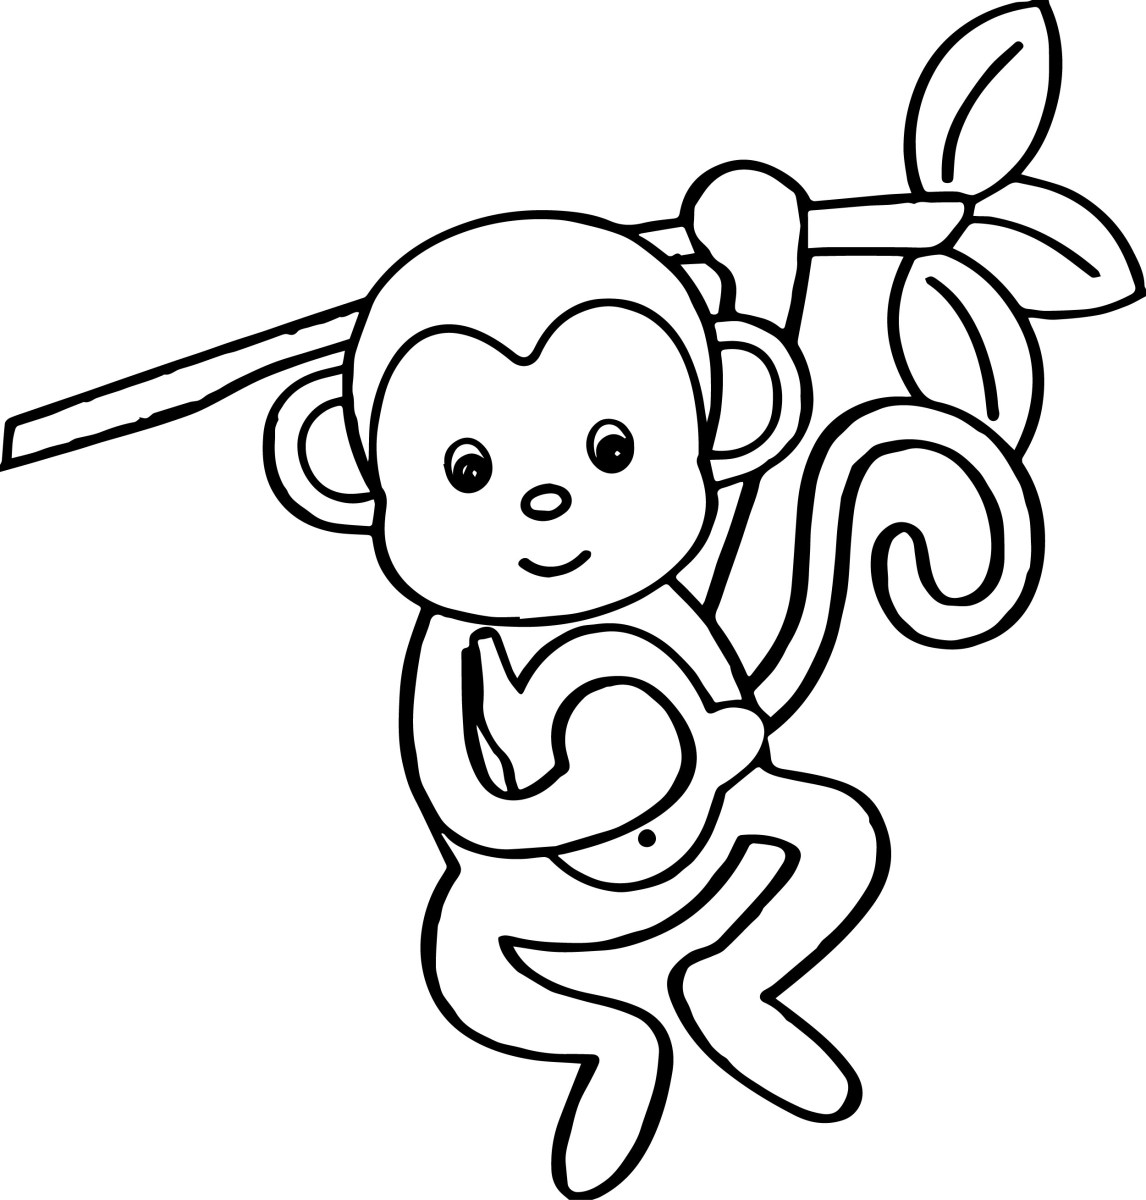 Monkey Coloring Pages Cartoon Animals Kids Monkey Coloring ...